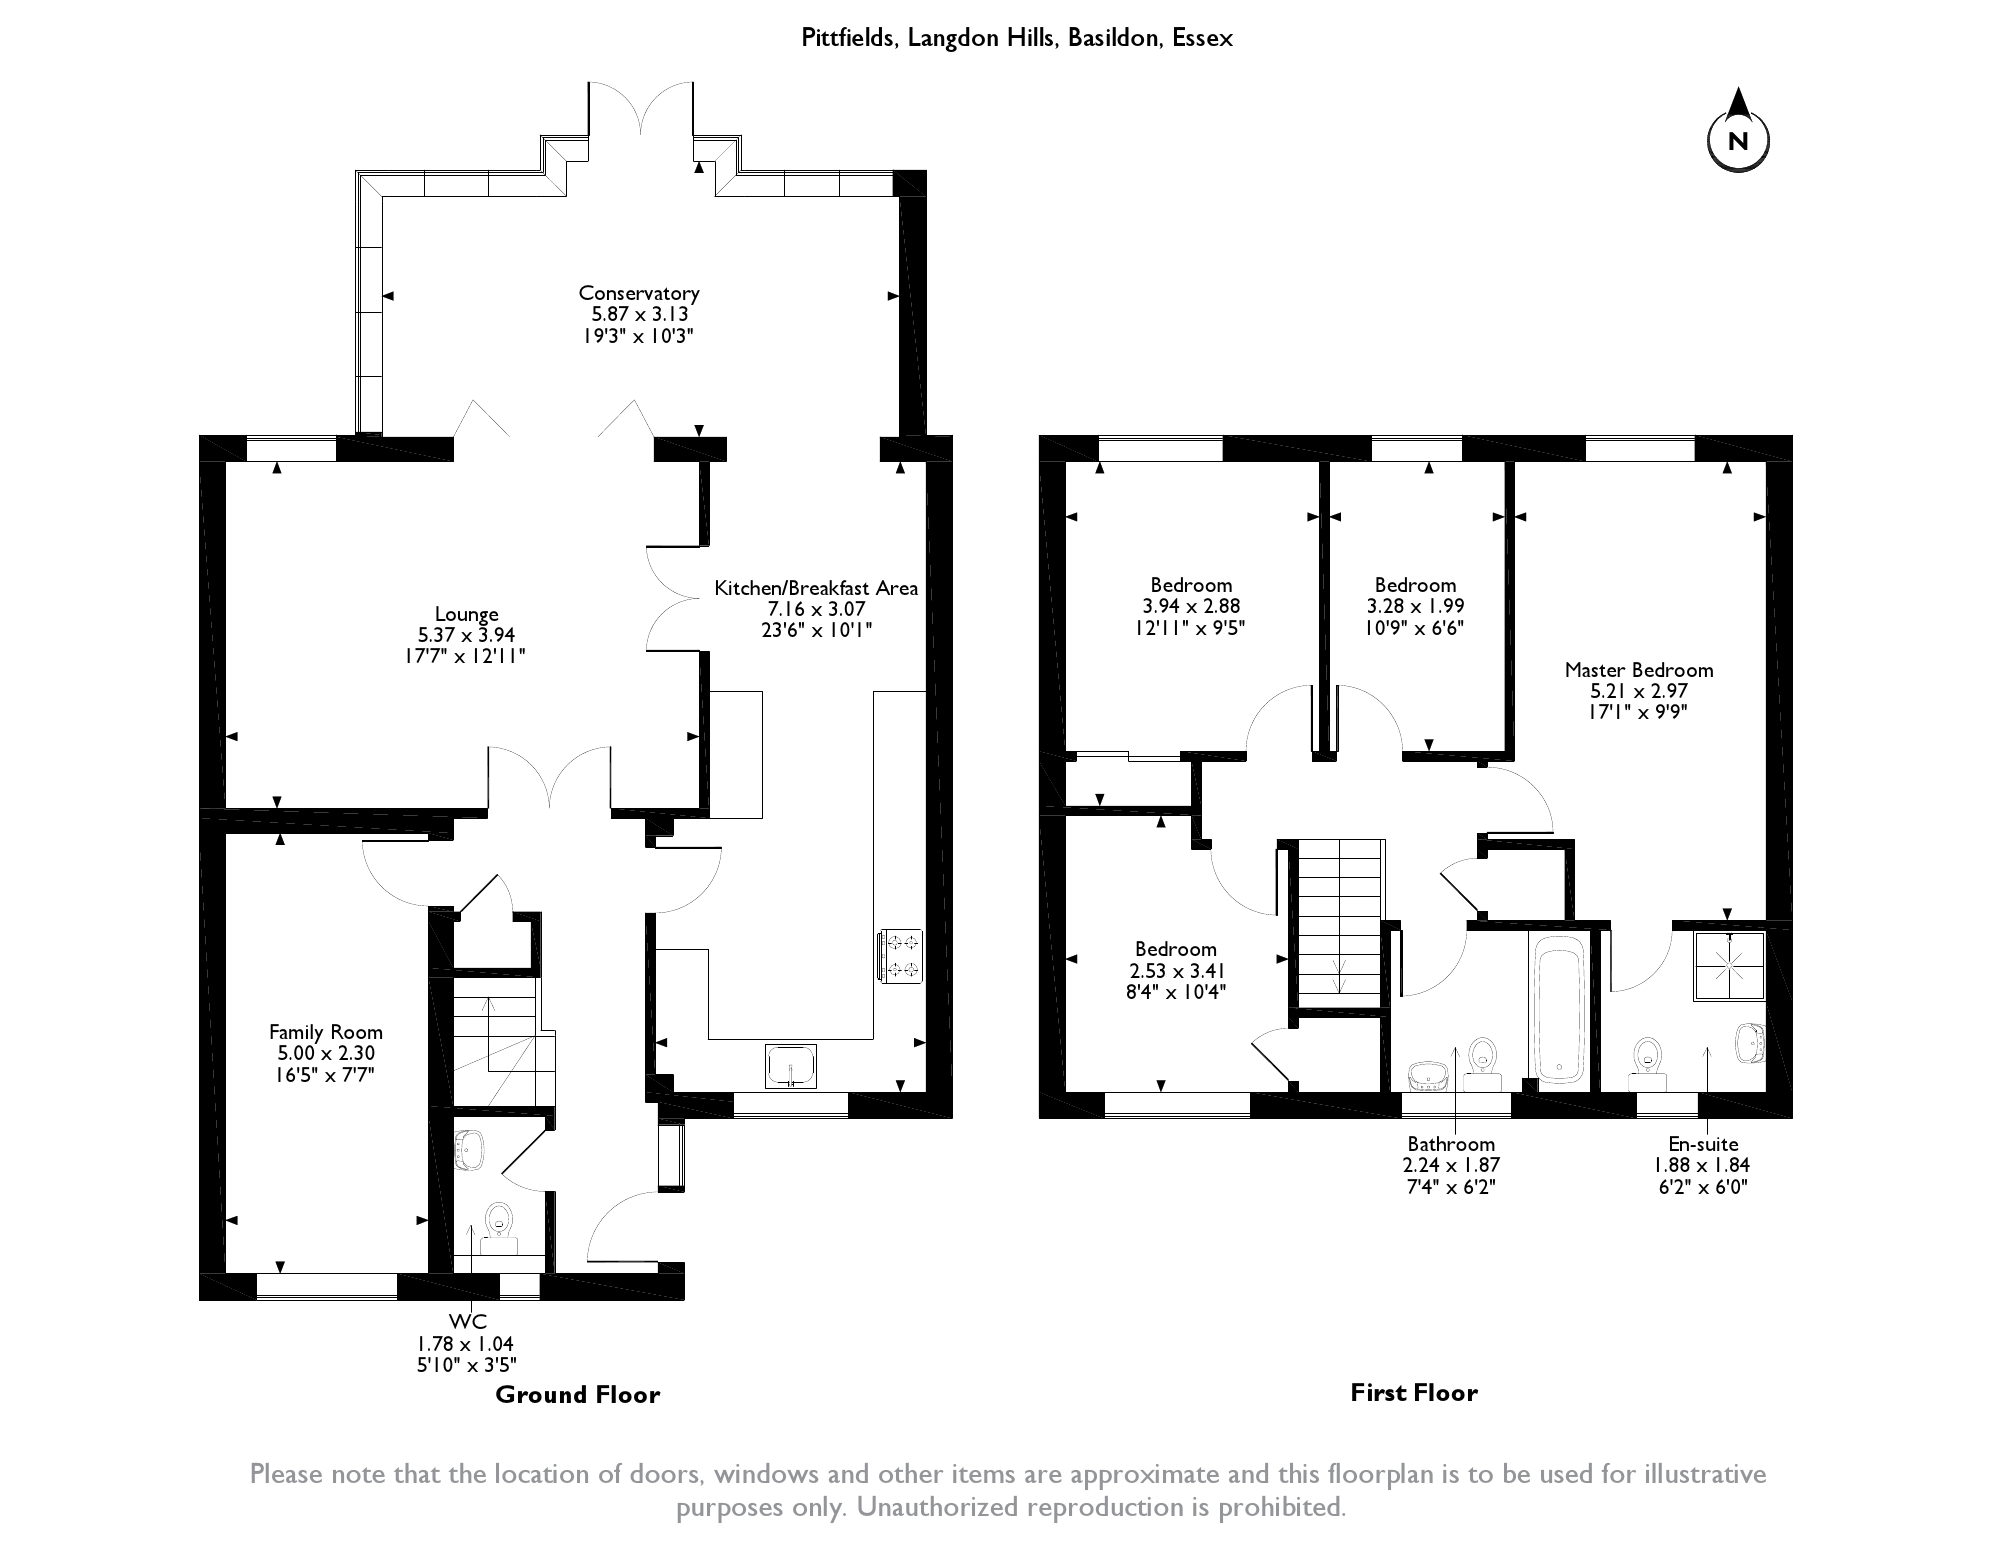 Pittfields, Langdon Hills, SS16 floor plan